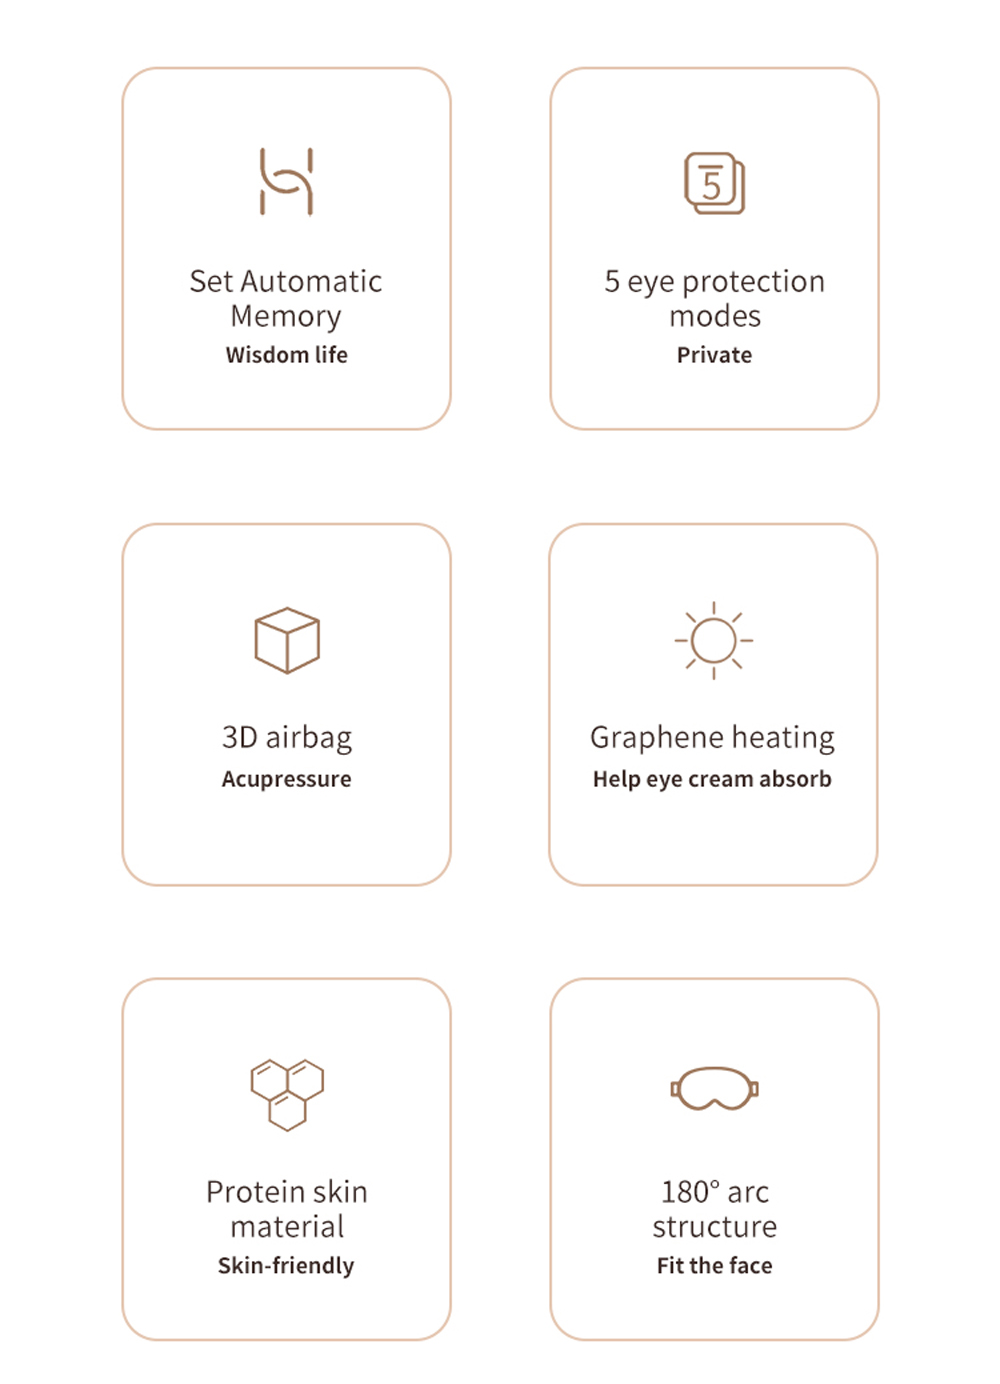 HUAWEI A3 Foldable Wireless Eye Massager with 8 Airbags 5 Modes Surround Stereo Sound Sleeping Headphone Eye Care Hot Compress Glasses Works with HUAWEI HiLink - Blue Gray